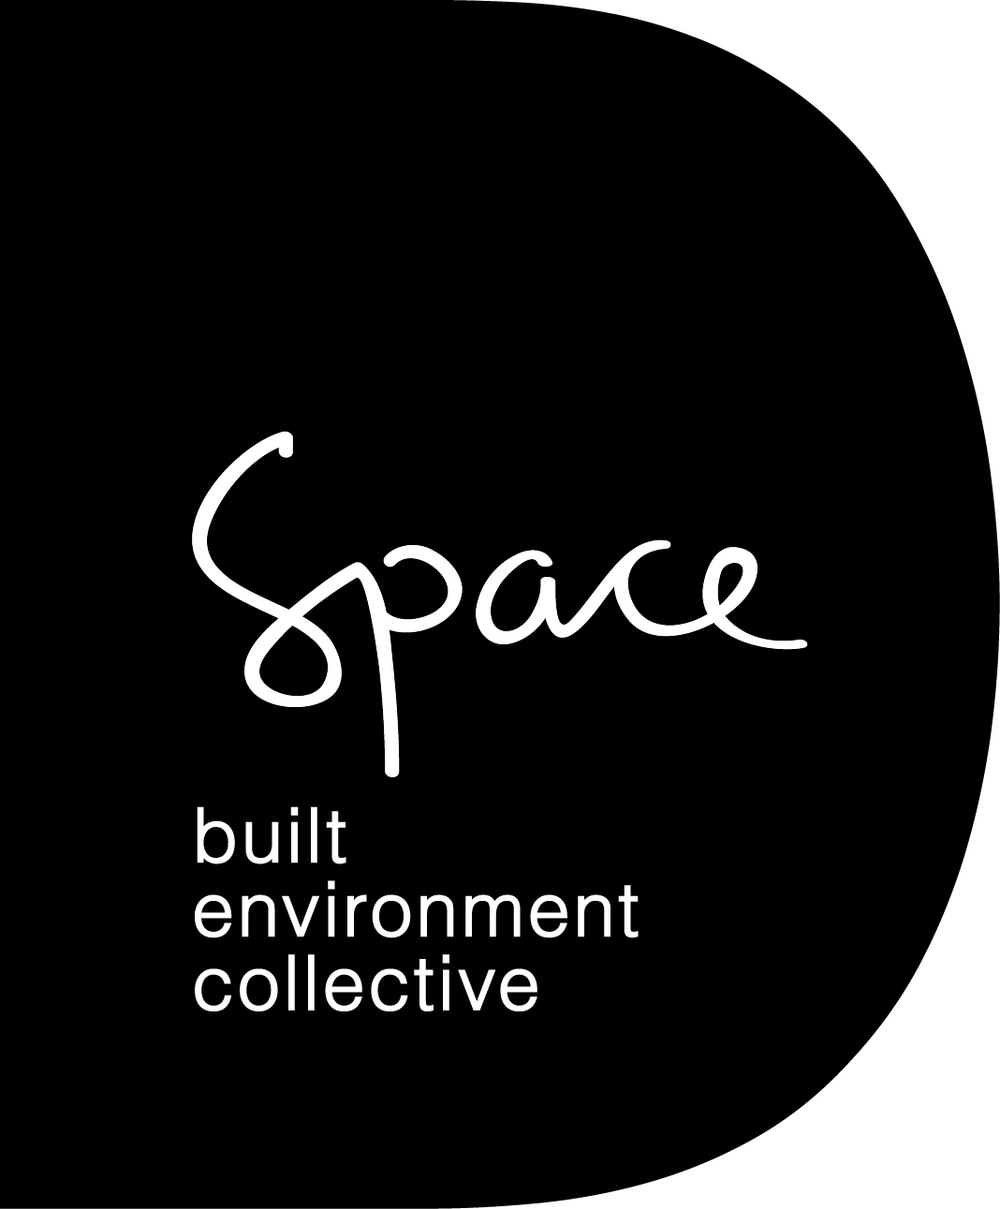 D space [built environment collective]